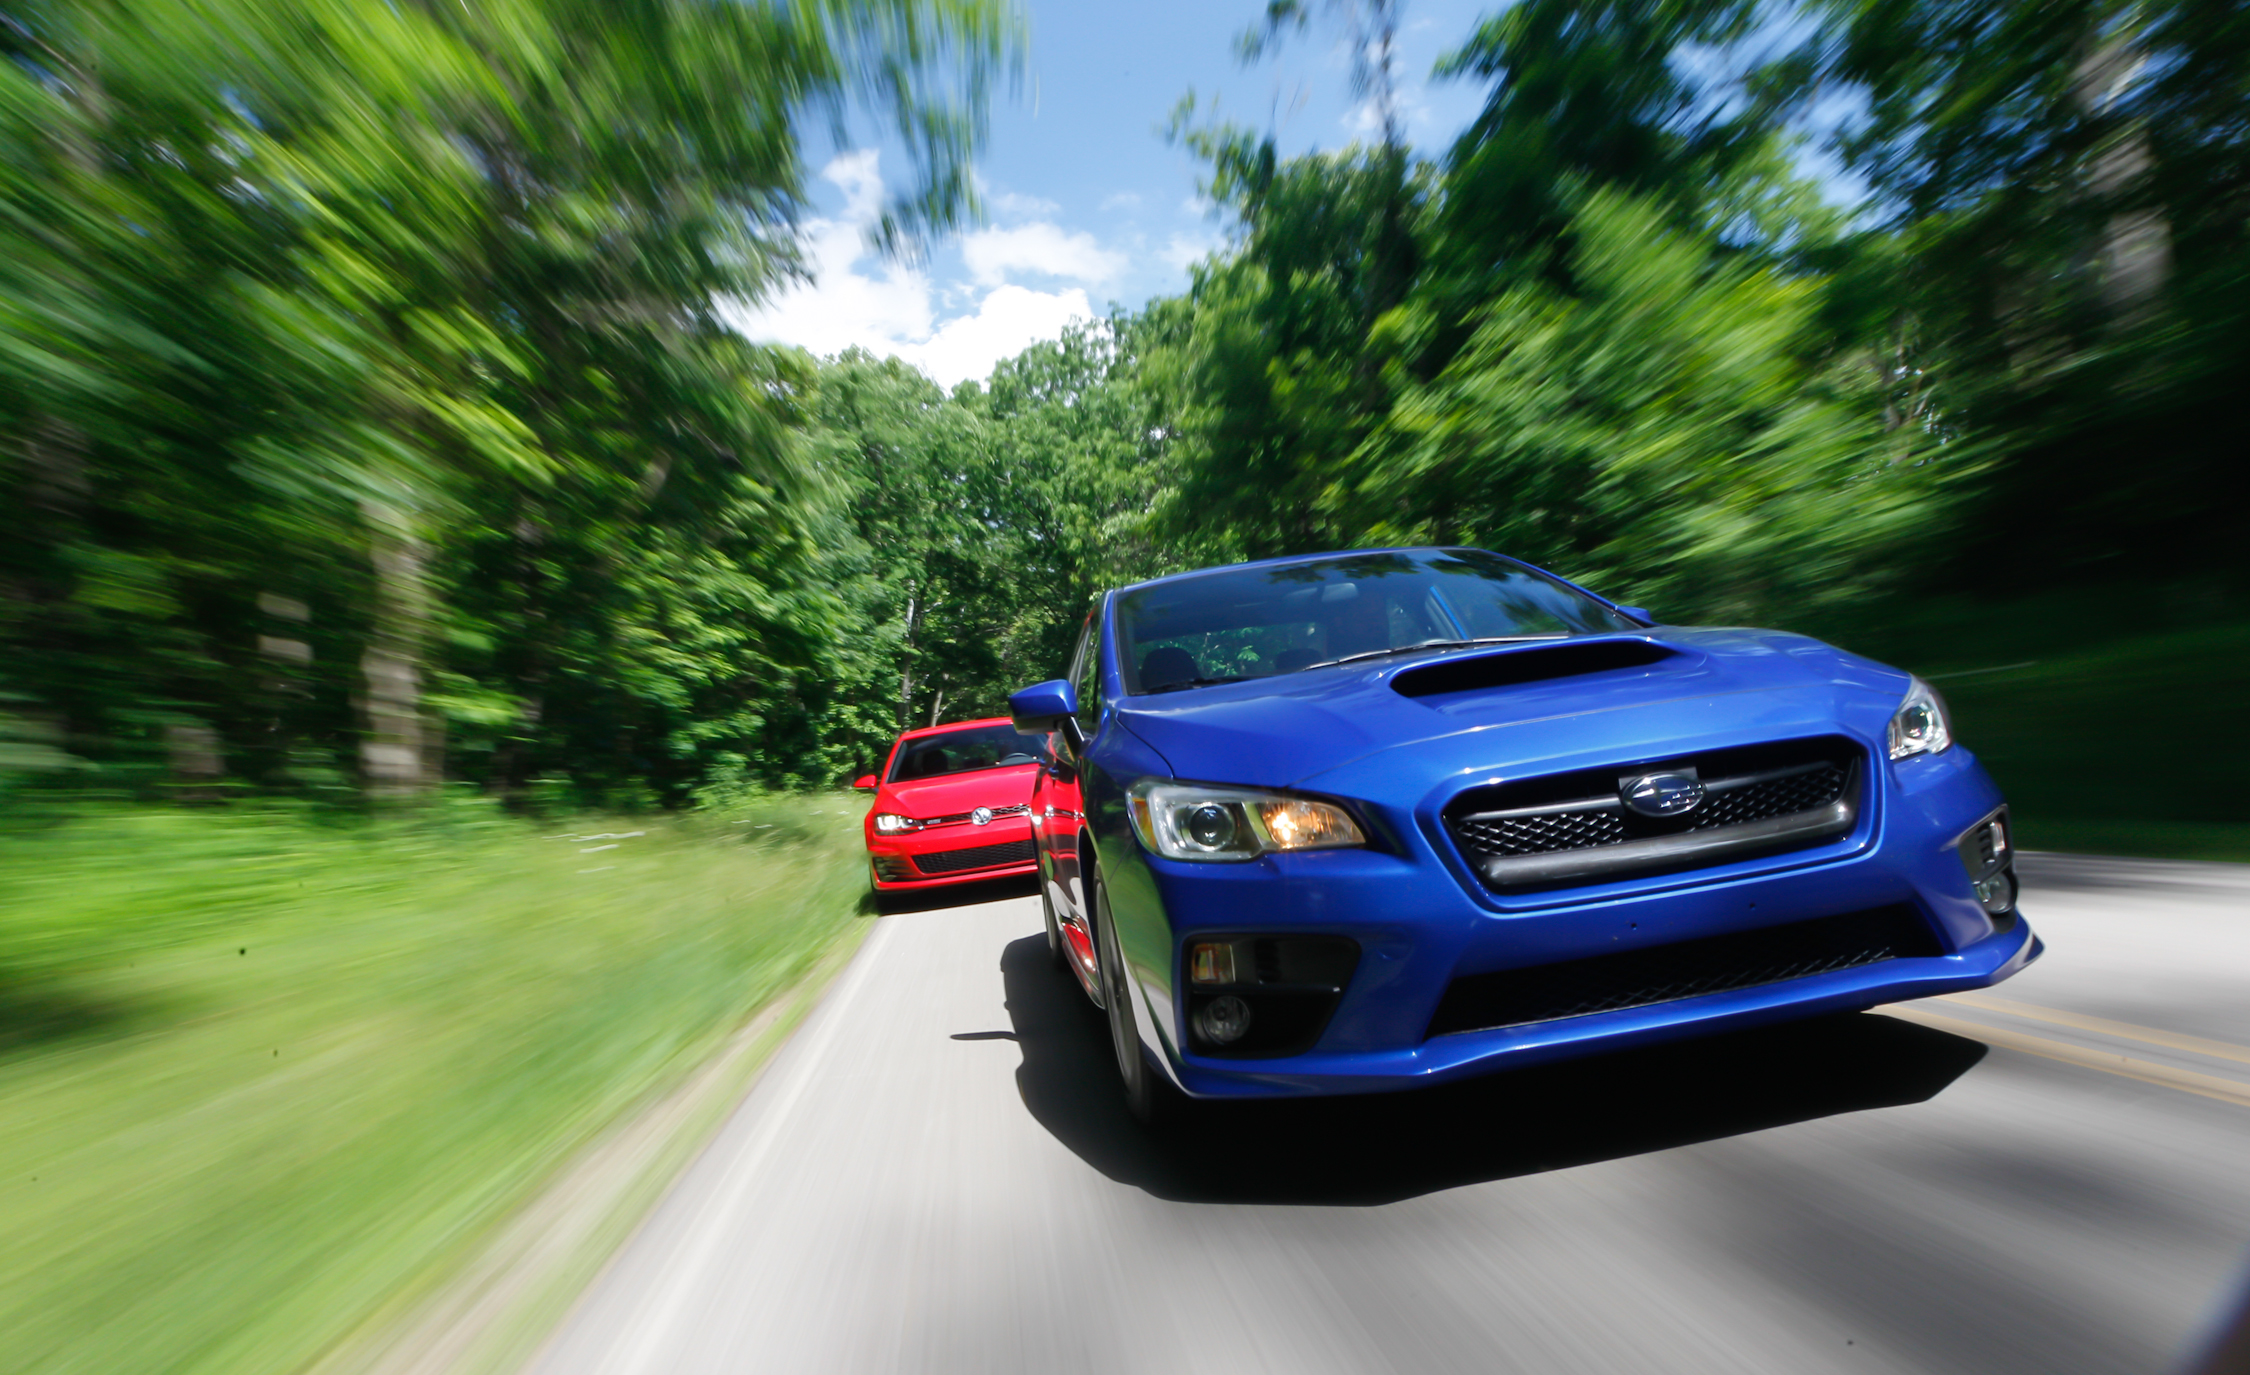 Front design 2015 subaru wrx vs 2015 volkswagen gti 6457 cars performance reviews and test drive